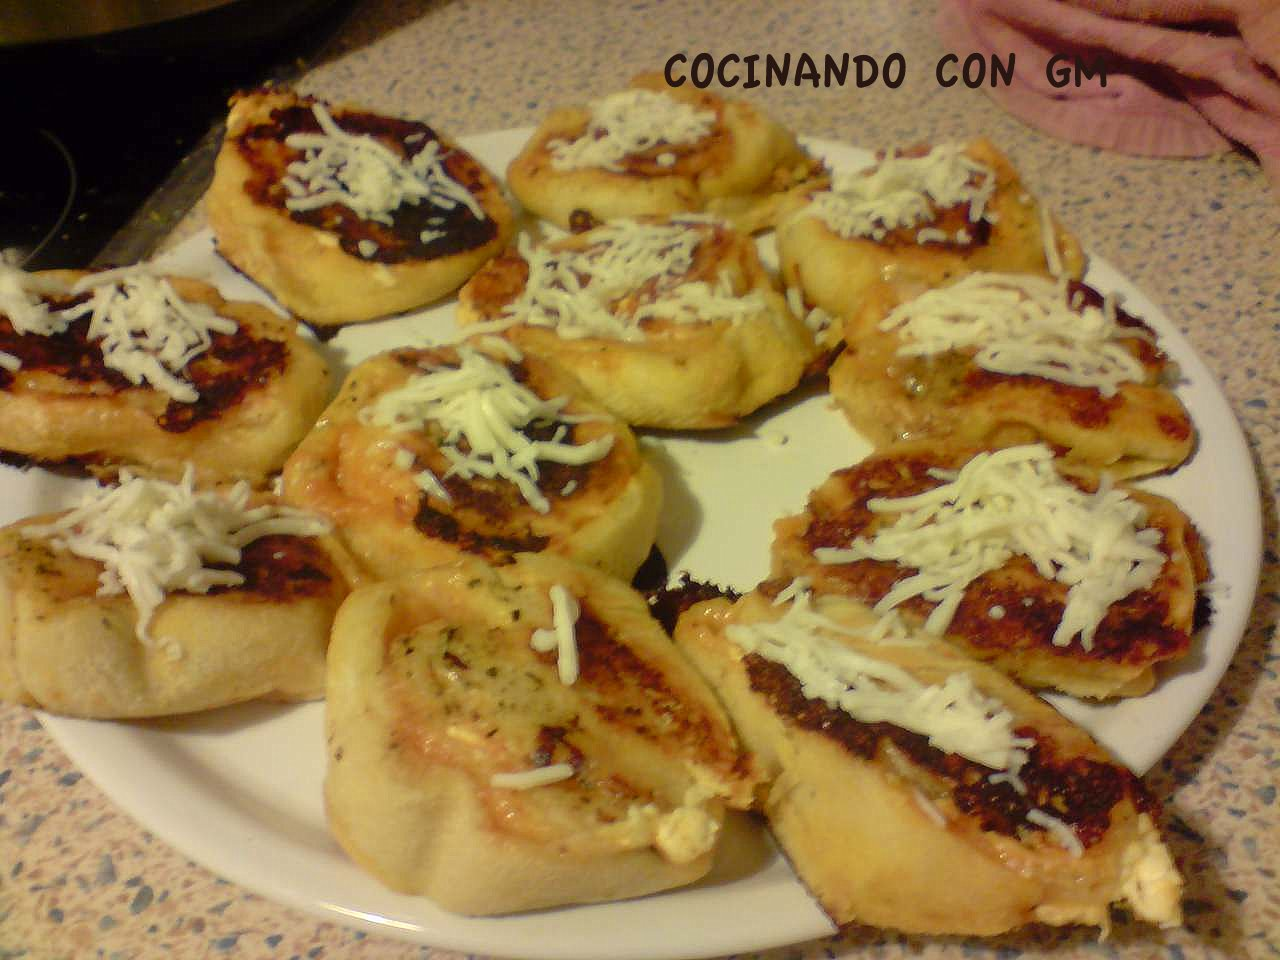 Pizza Roller Cocinando Con Gm Pizza Roller